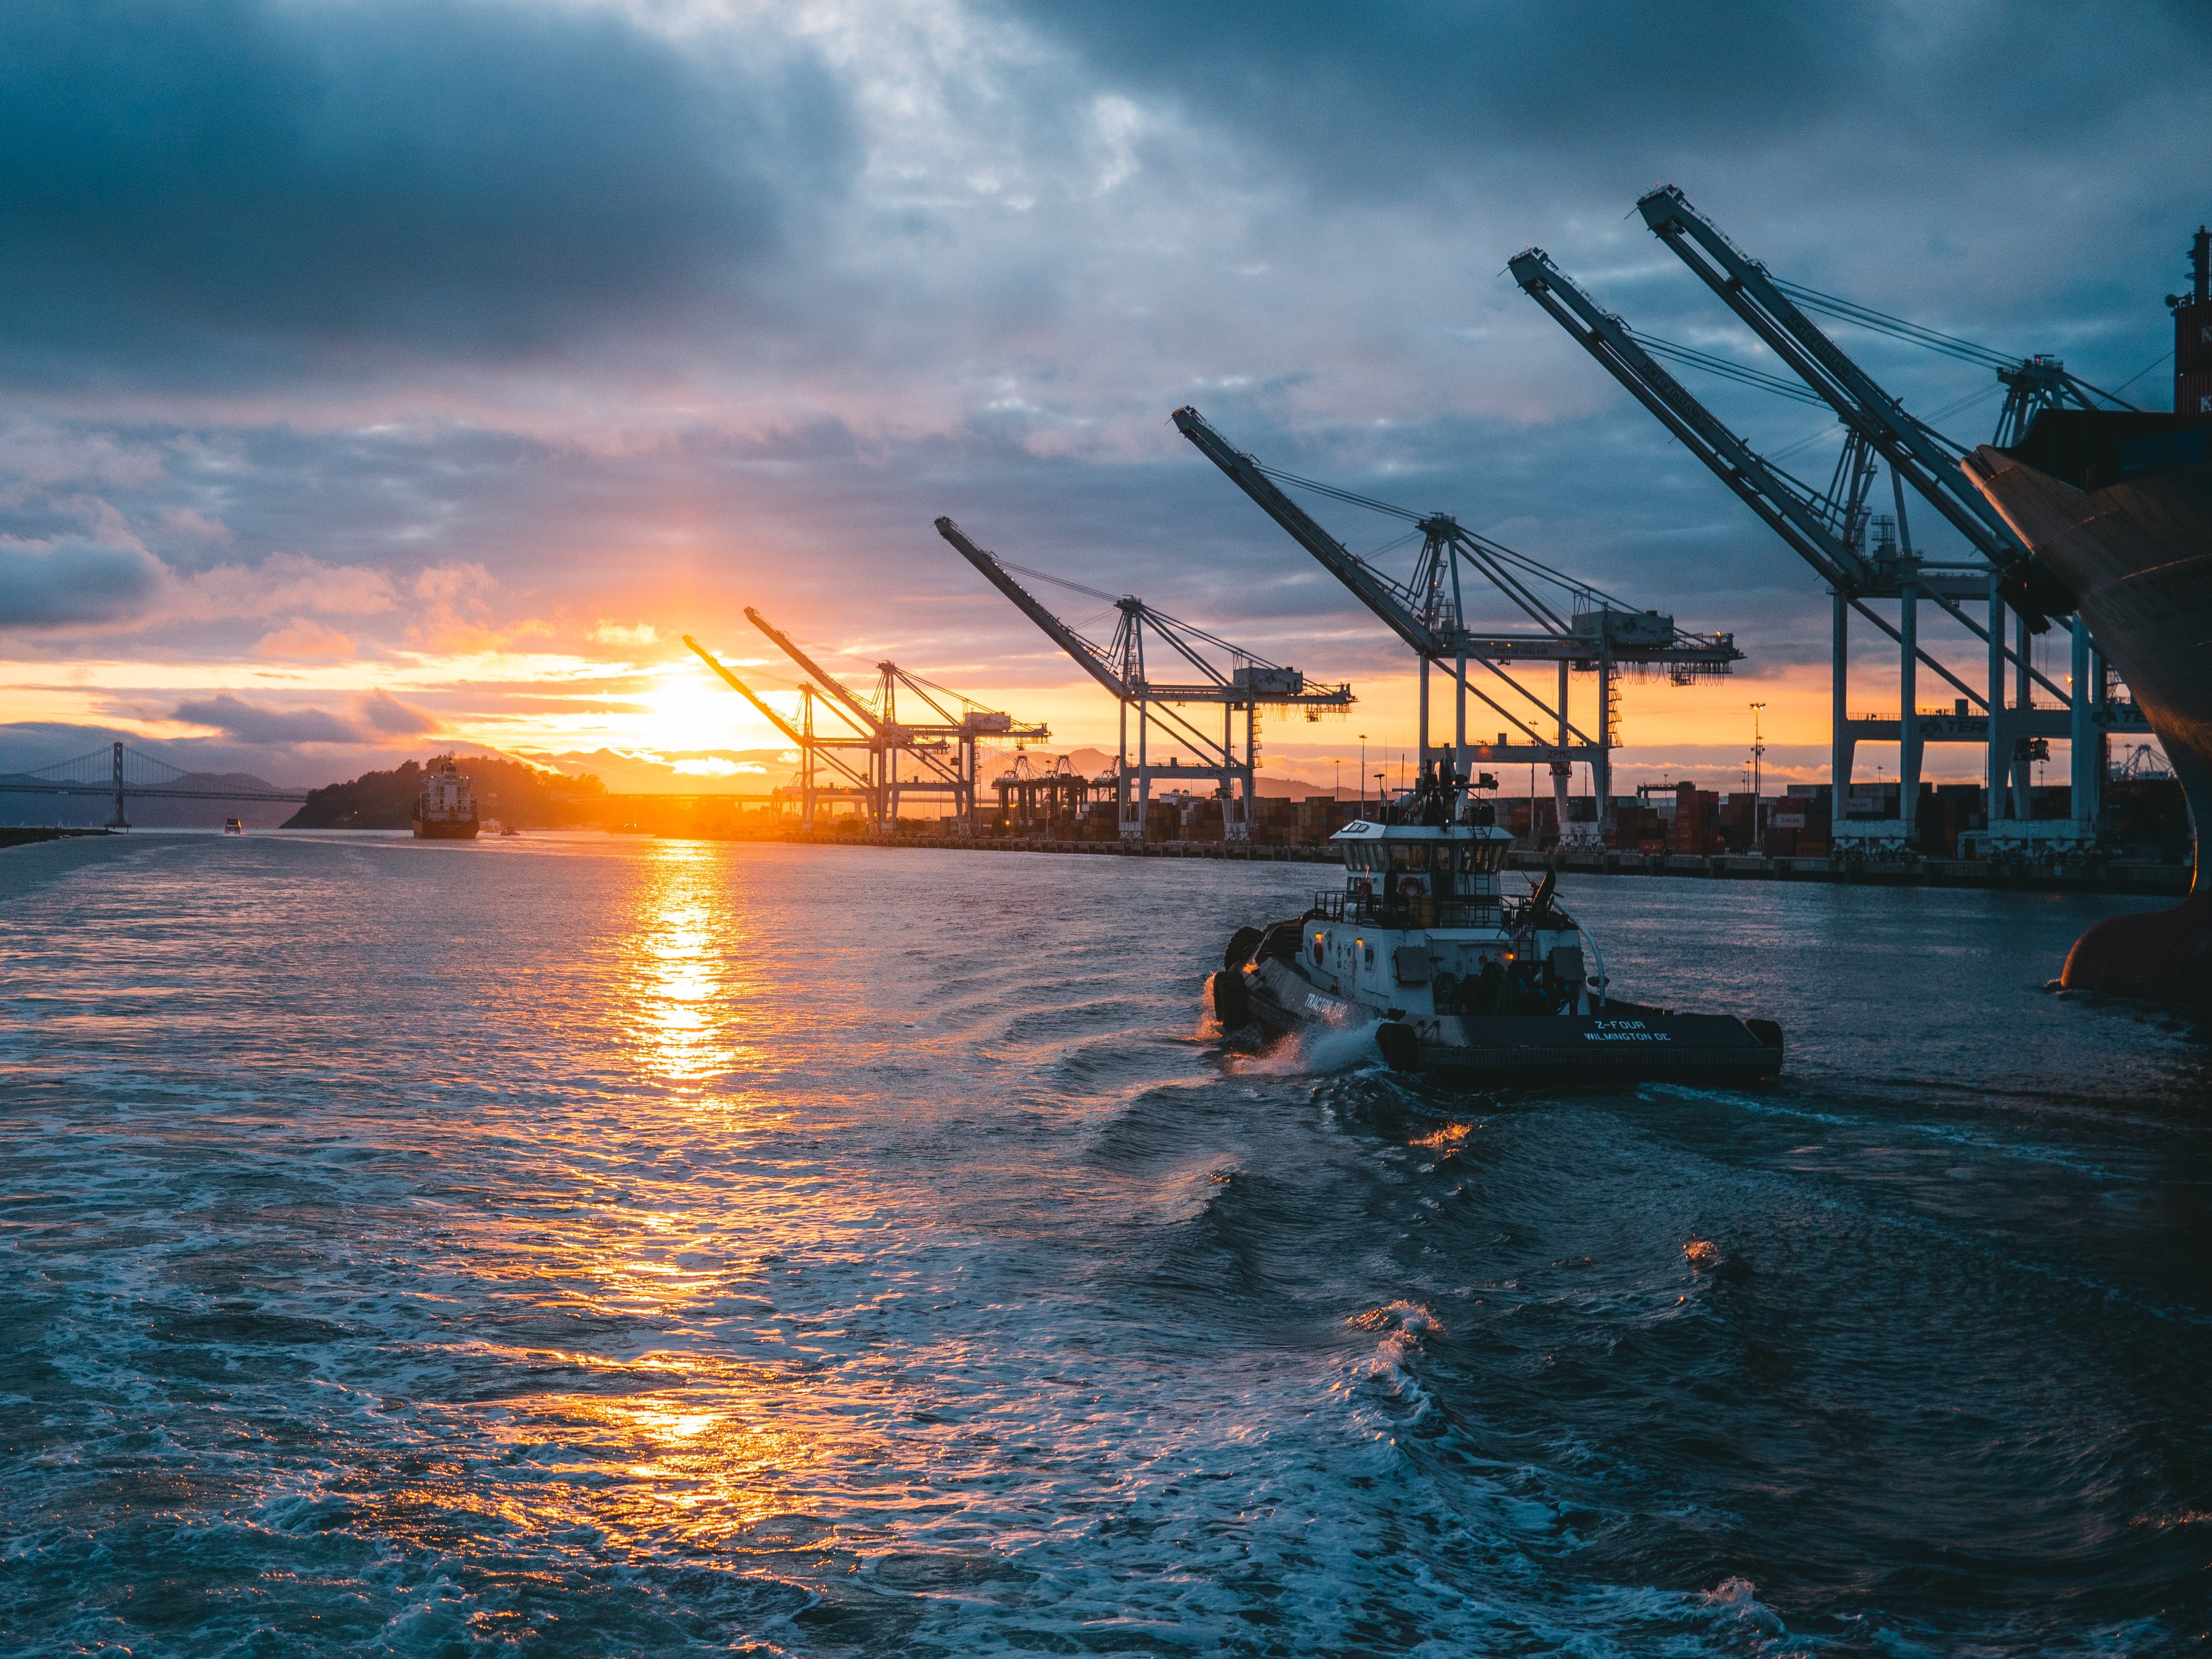 Clearing the Ports is One Step in Fixing Supply Chain